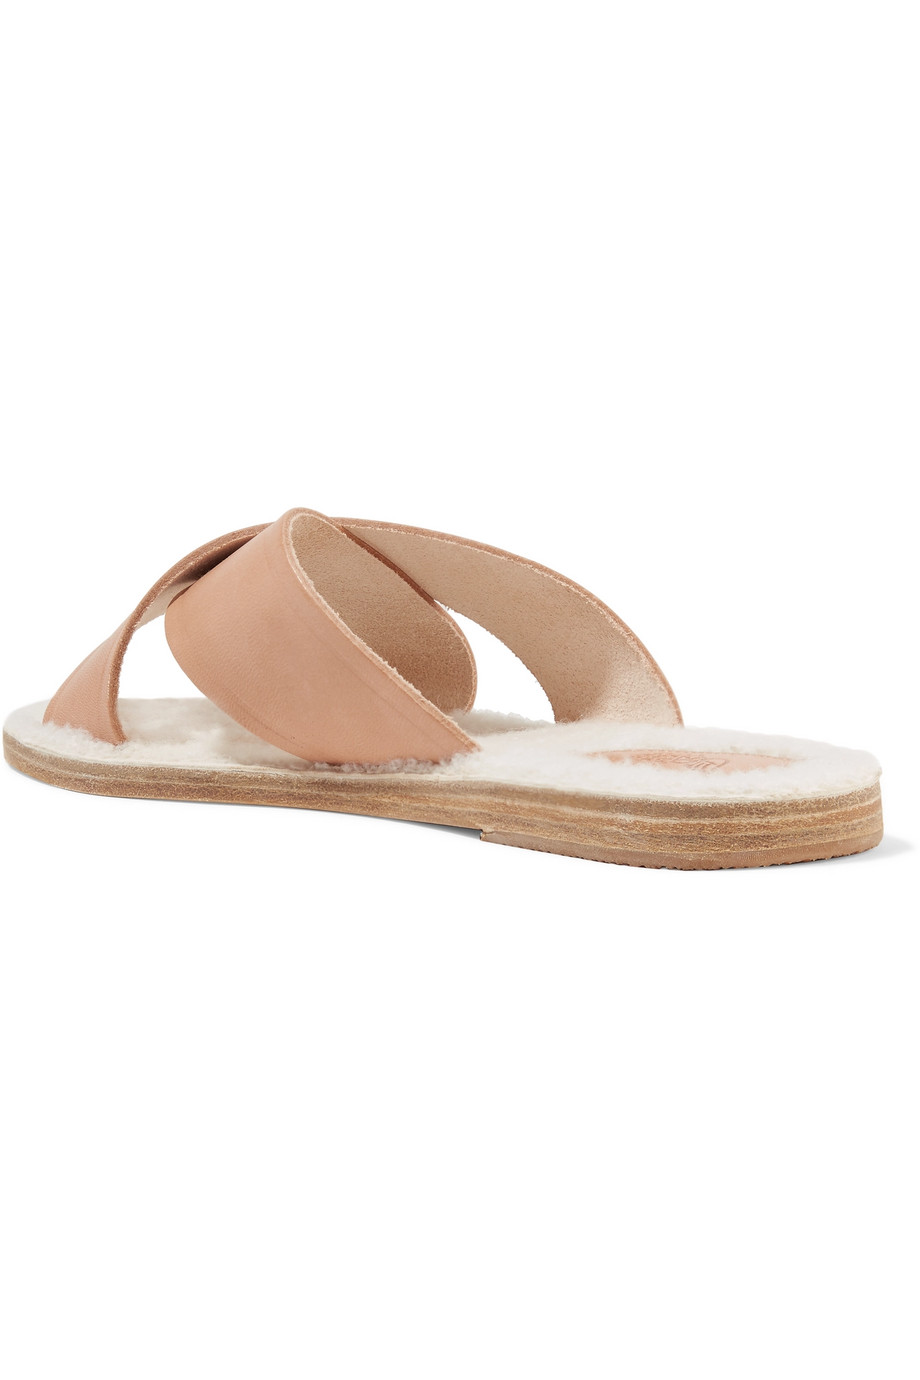 Leather slippers Ancient Greek Sandals buy Leather slippers Ancient Greek Sandals internet shop